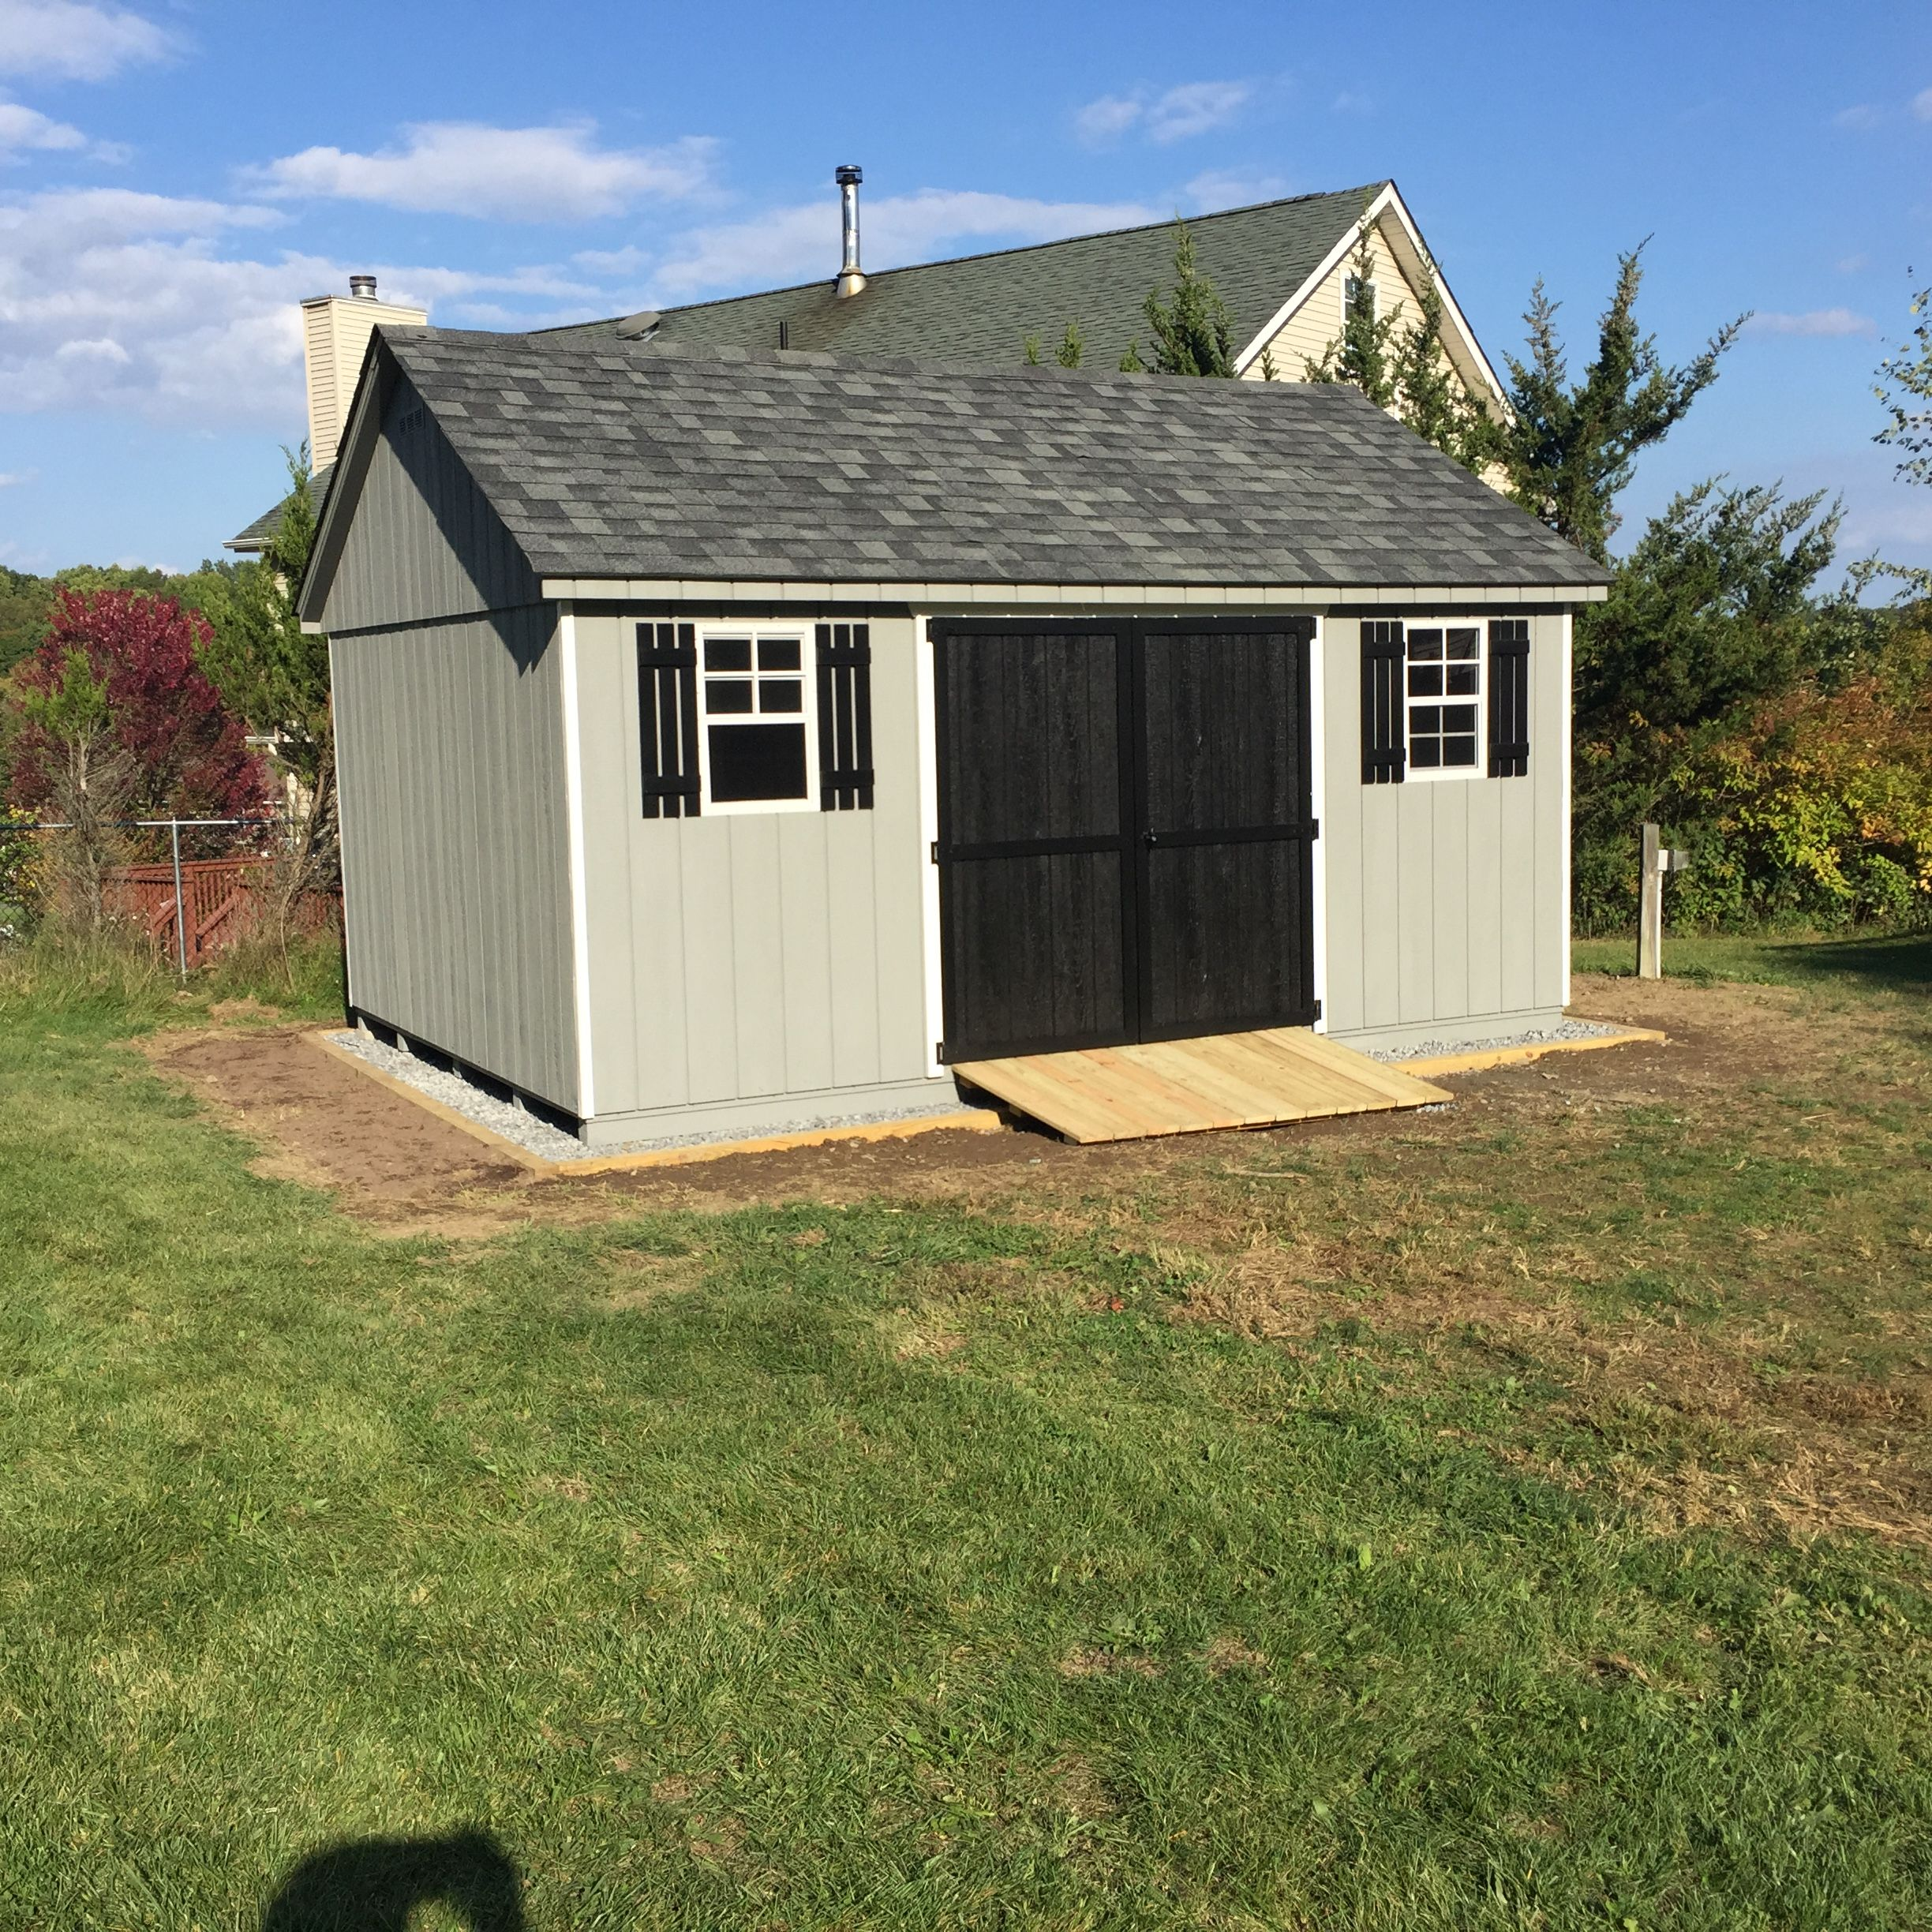 A high quality storage shed is the perfect addition to Shed addition